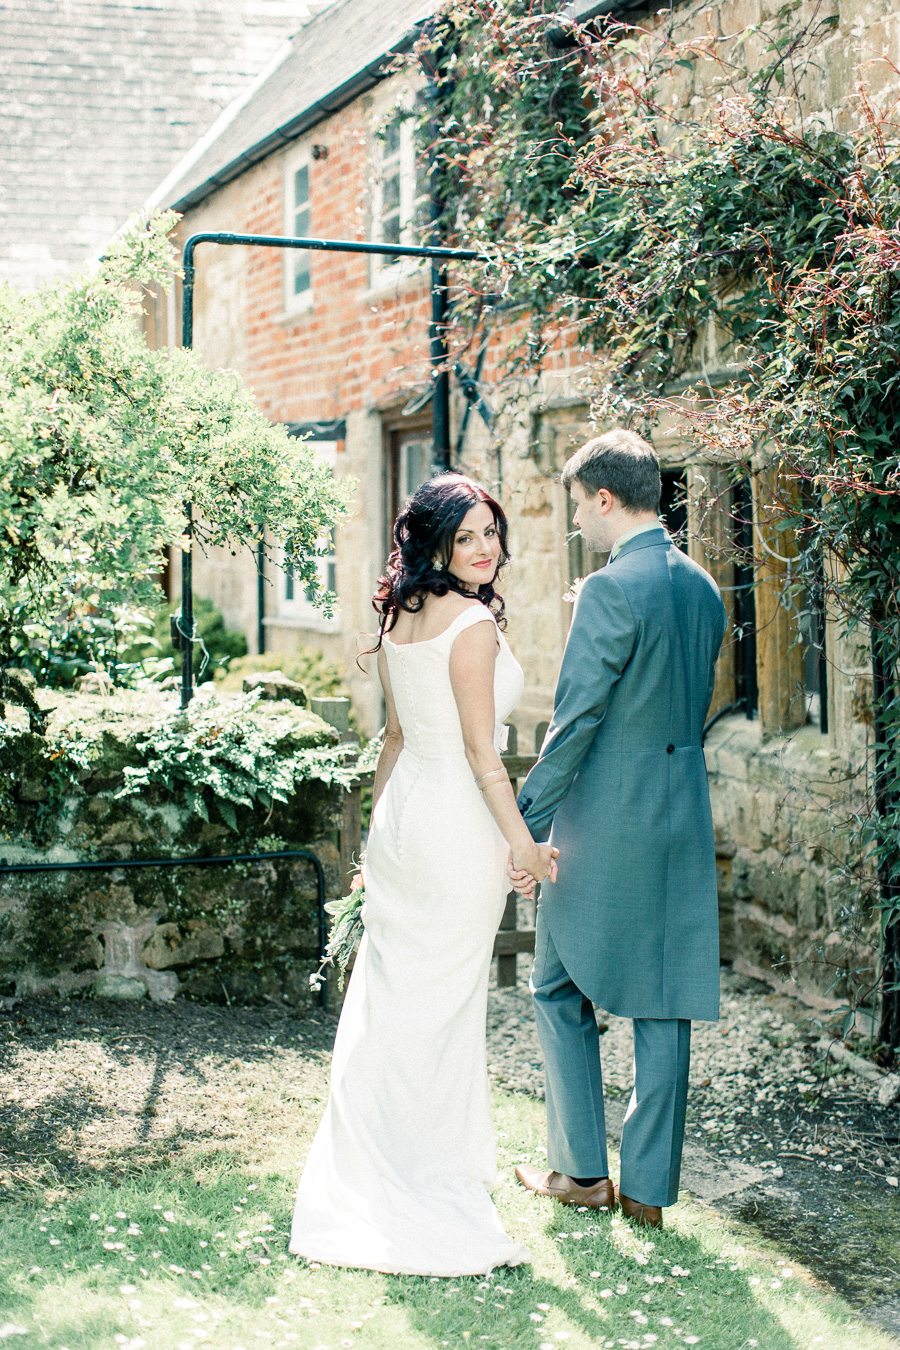 Jordans Courtyard rustic wedding styling ideas with images by Liz Baker Photography (33)